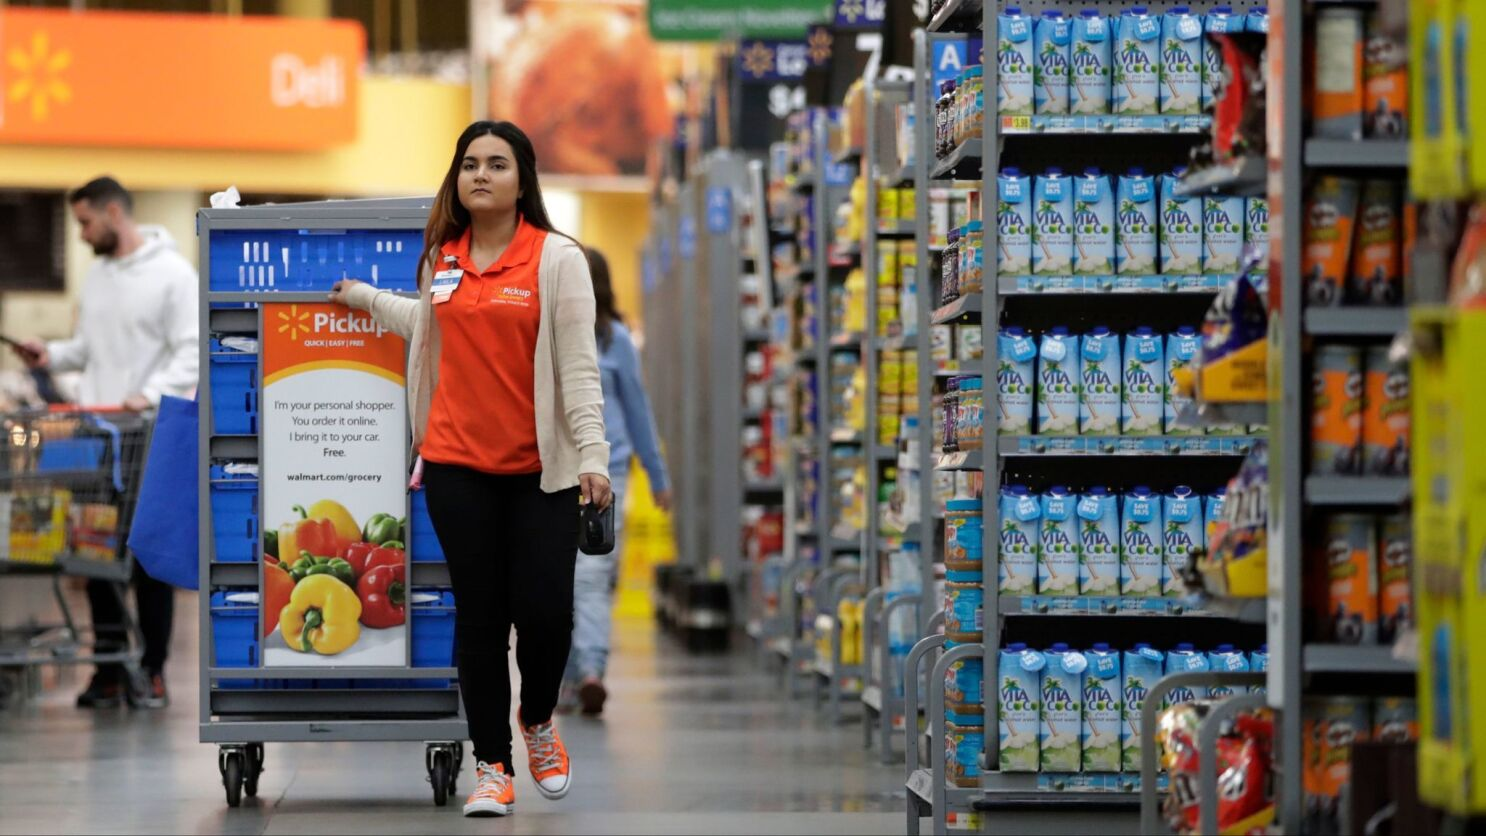 Retail workers' jobs are transforming as shoppers' habits